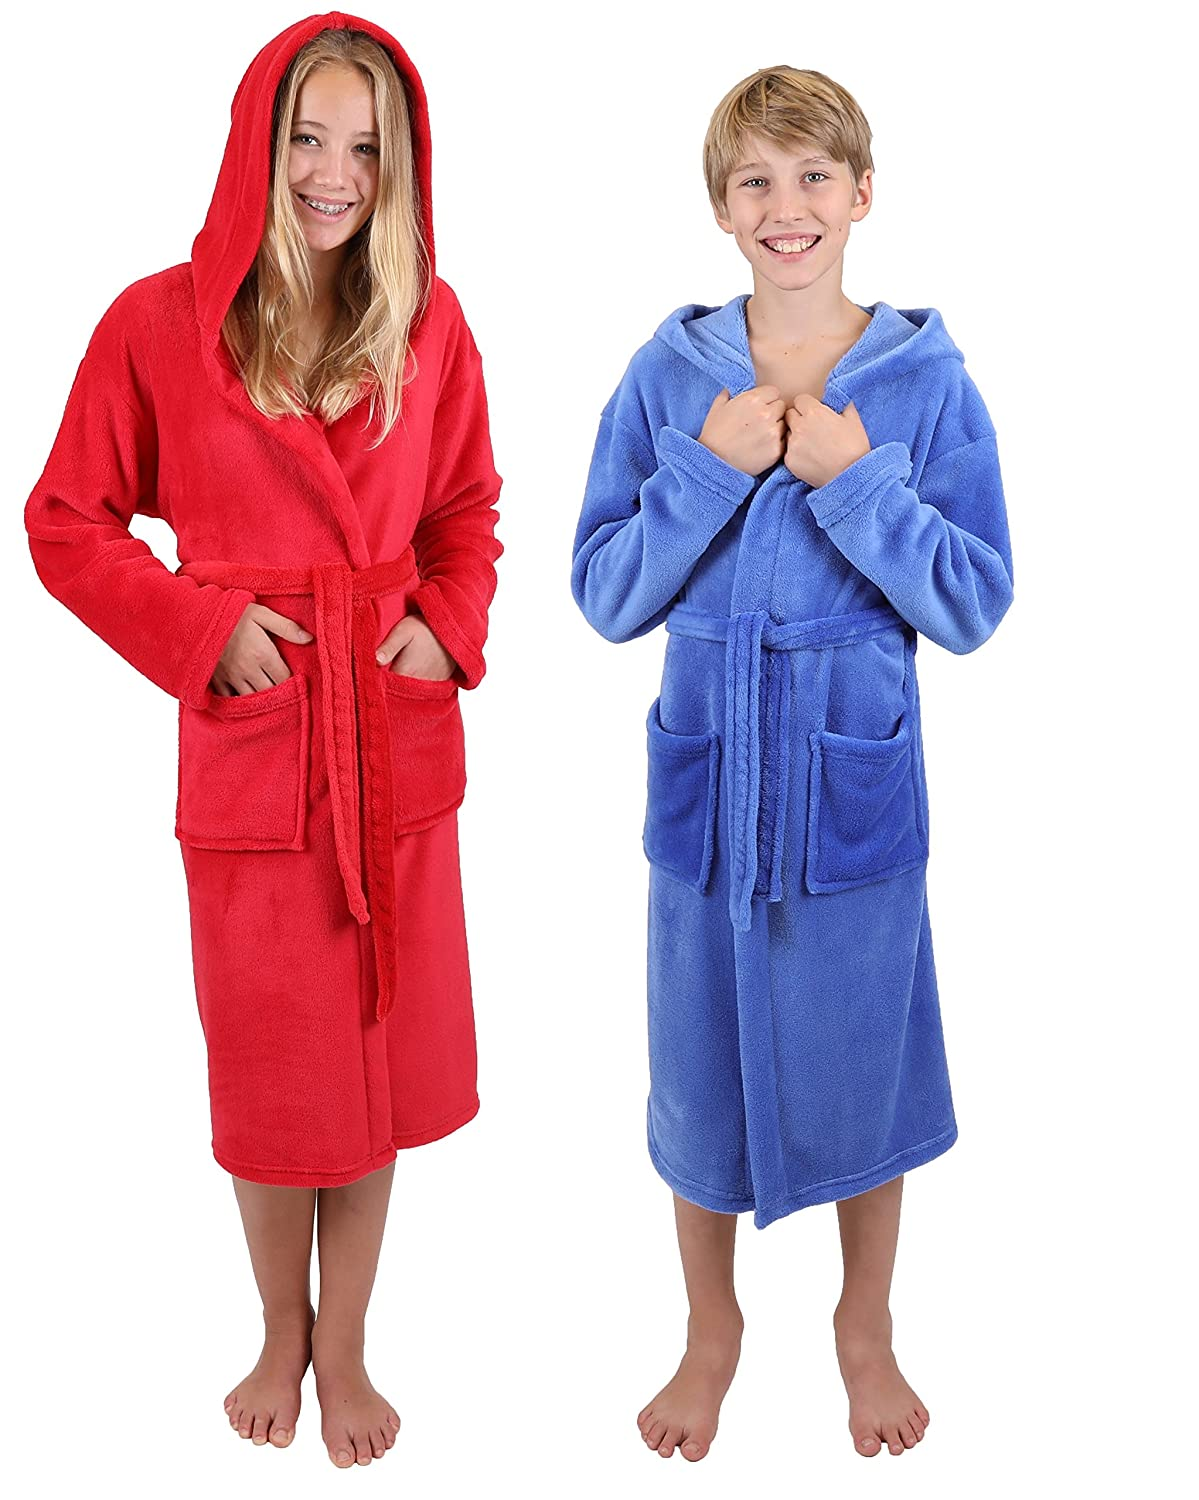 Betz Bathrobe Hooded Kids Bath Robe Cuddly Soft Colours: blue/red size 140 / red